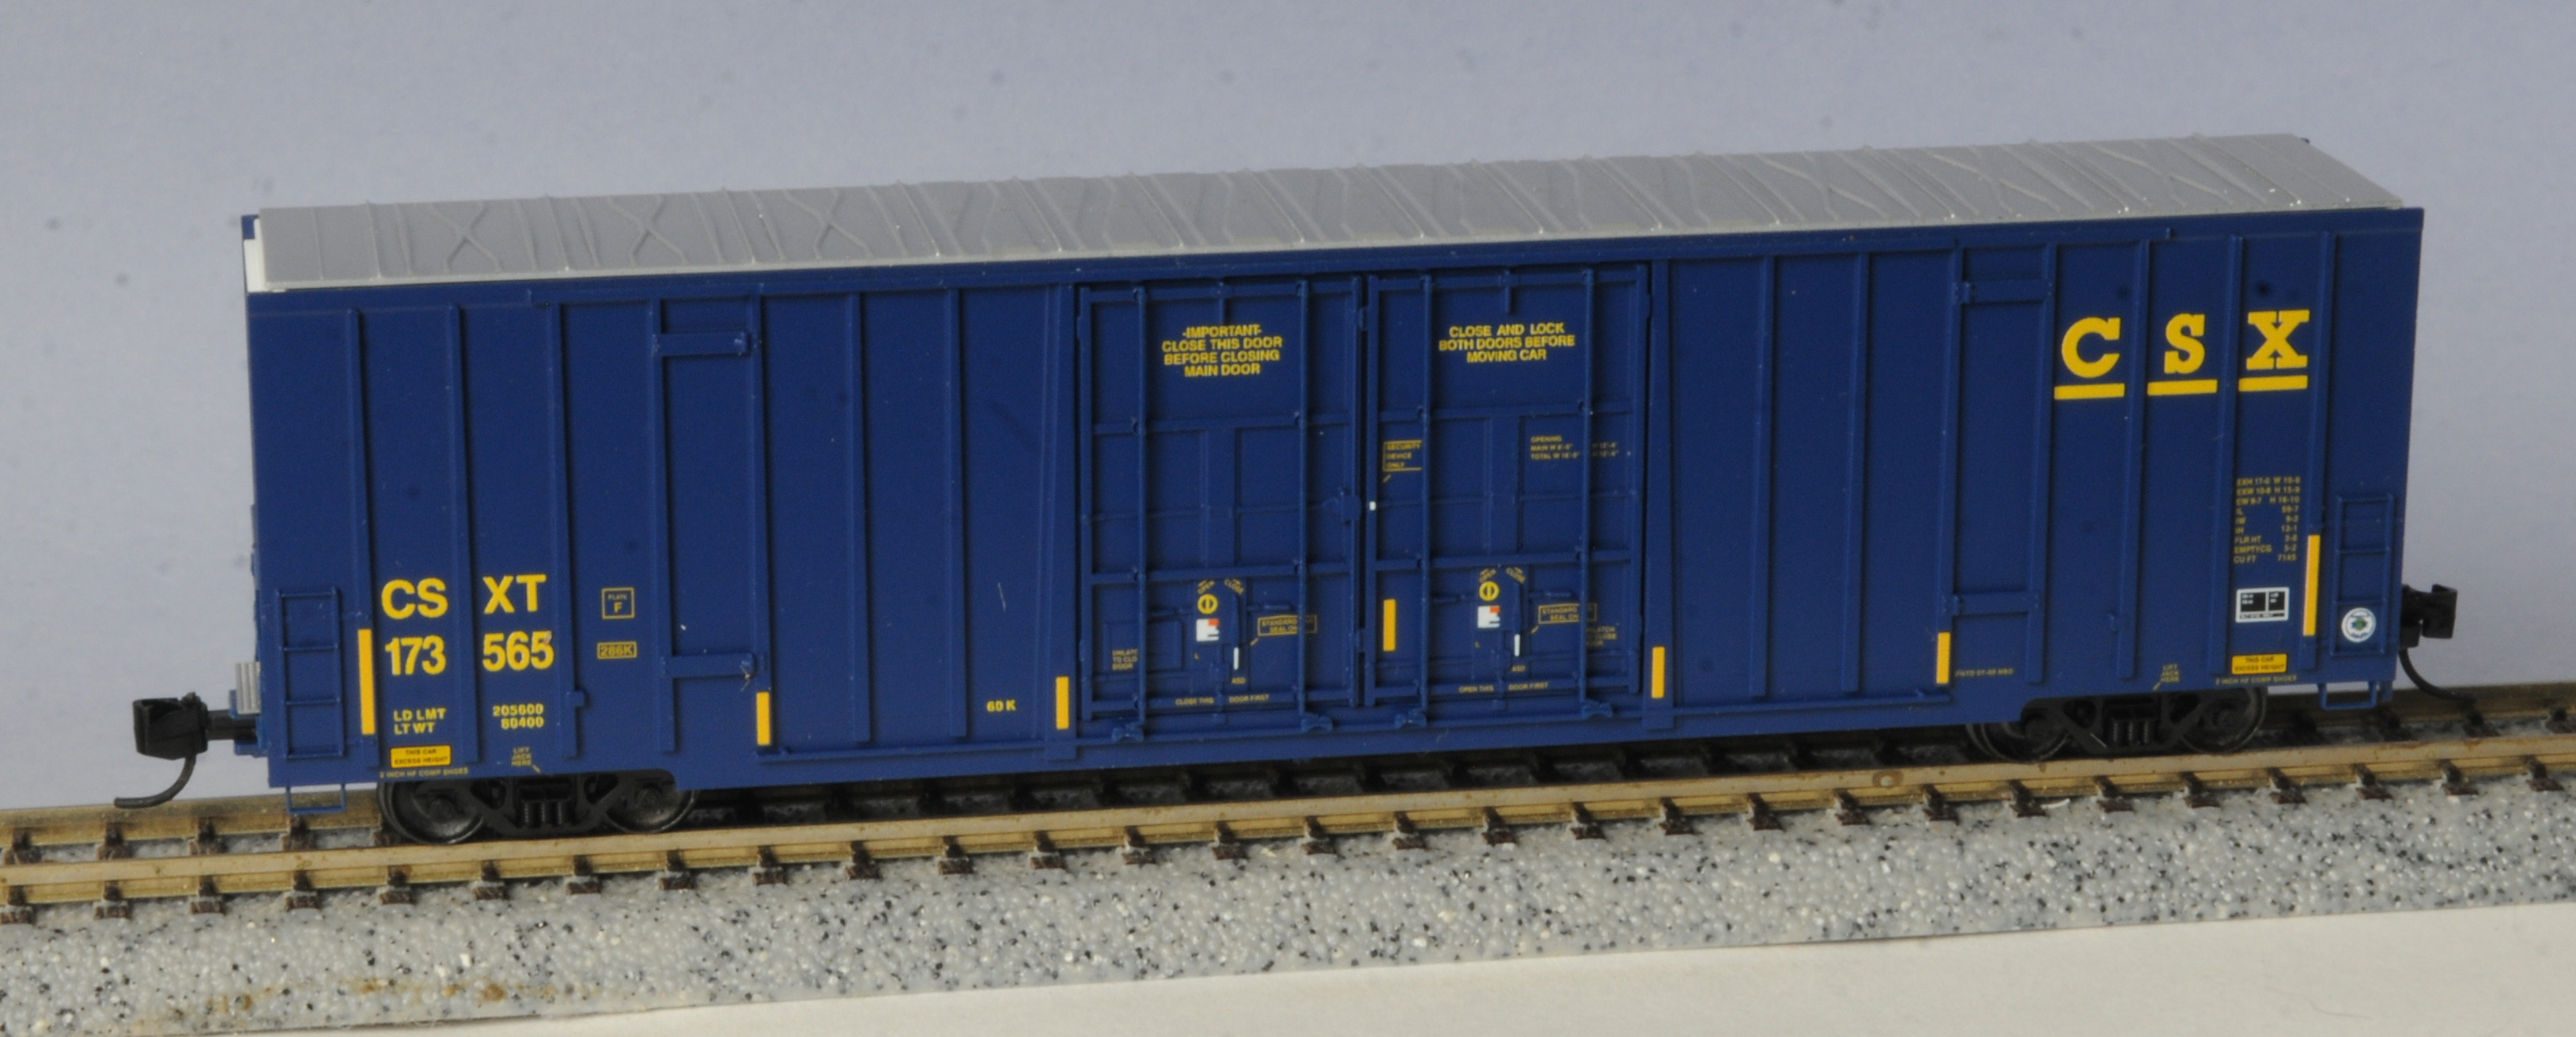 N Scale - Micro-Trains - 123 51 030 - Boxcar, 60 Foot, NSC Excess Height - CSX Transportation - 173565